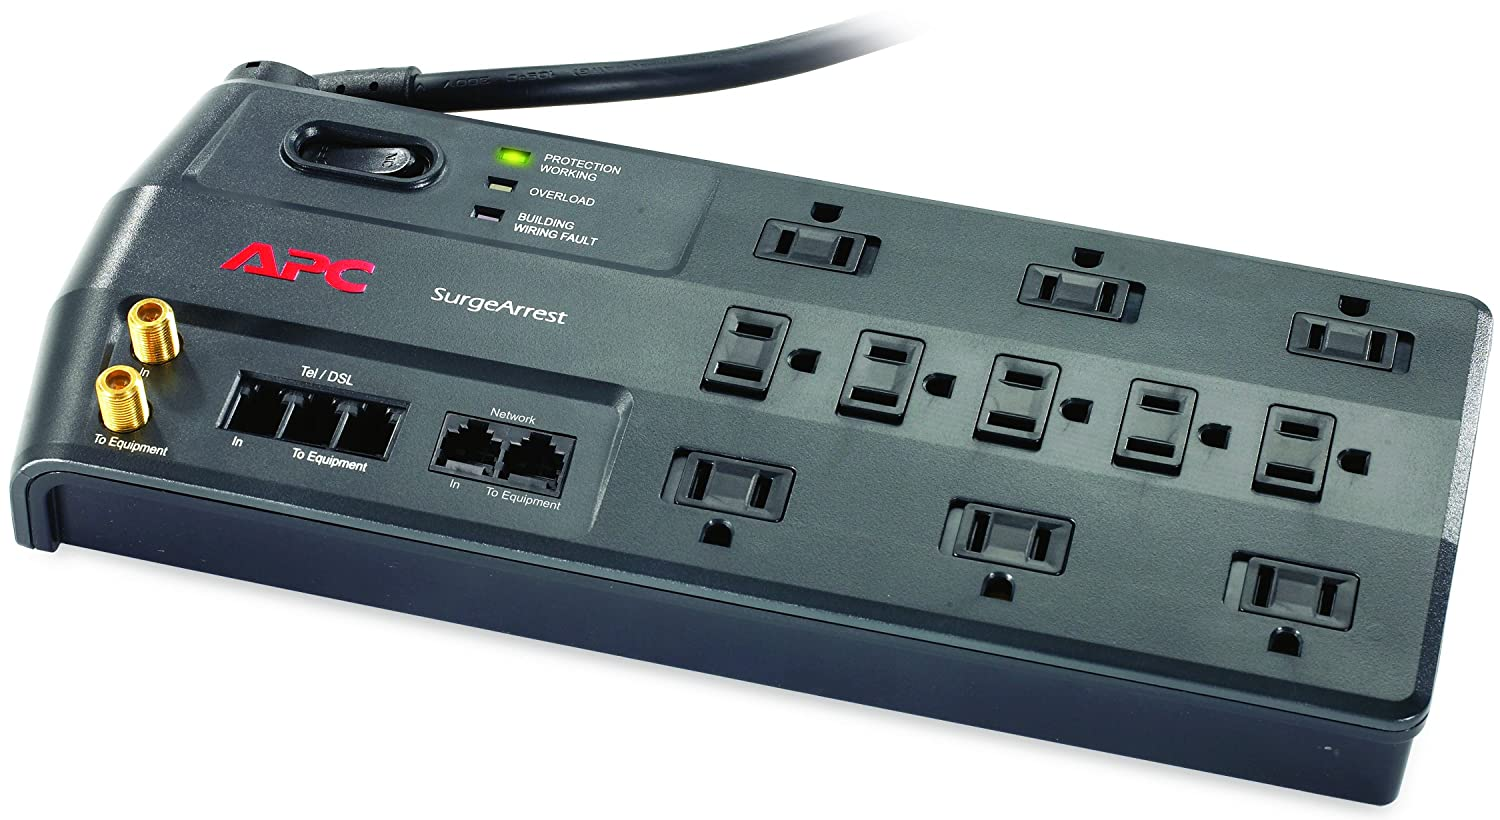 P8T3 2525 Joules SurgeArrest Performance APC 8-Outlet Surge Protector Power Strip with Telephone and DSL Protection